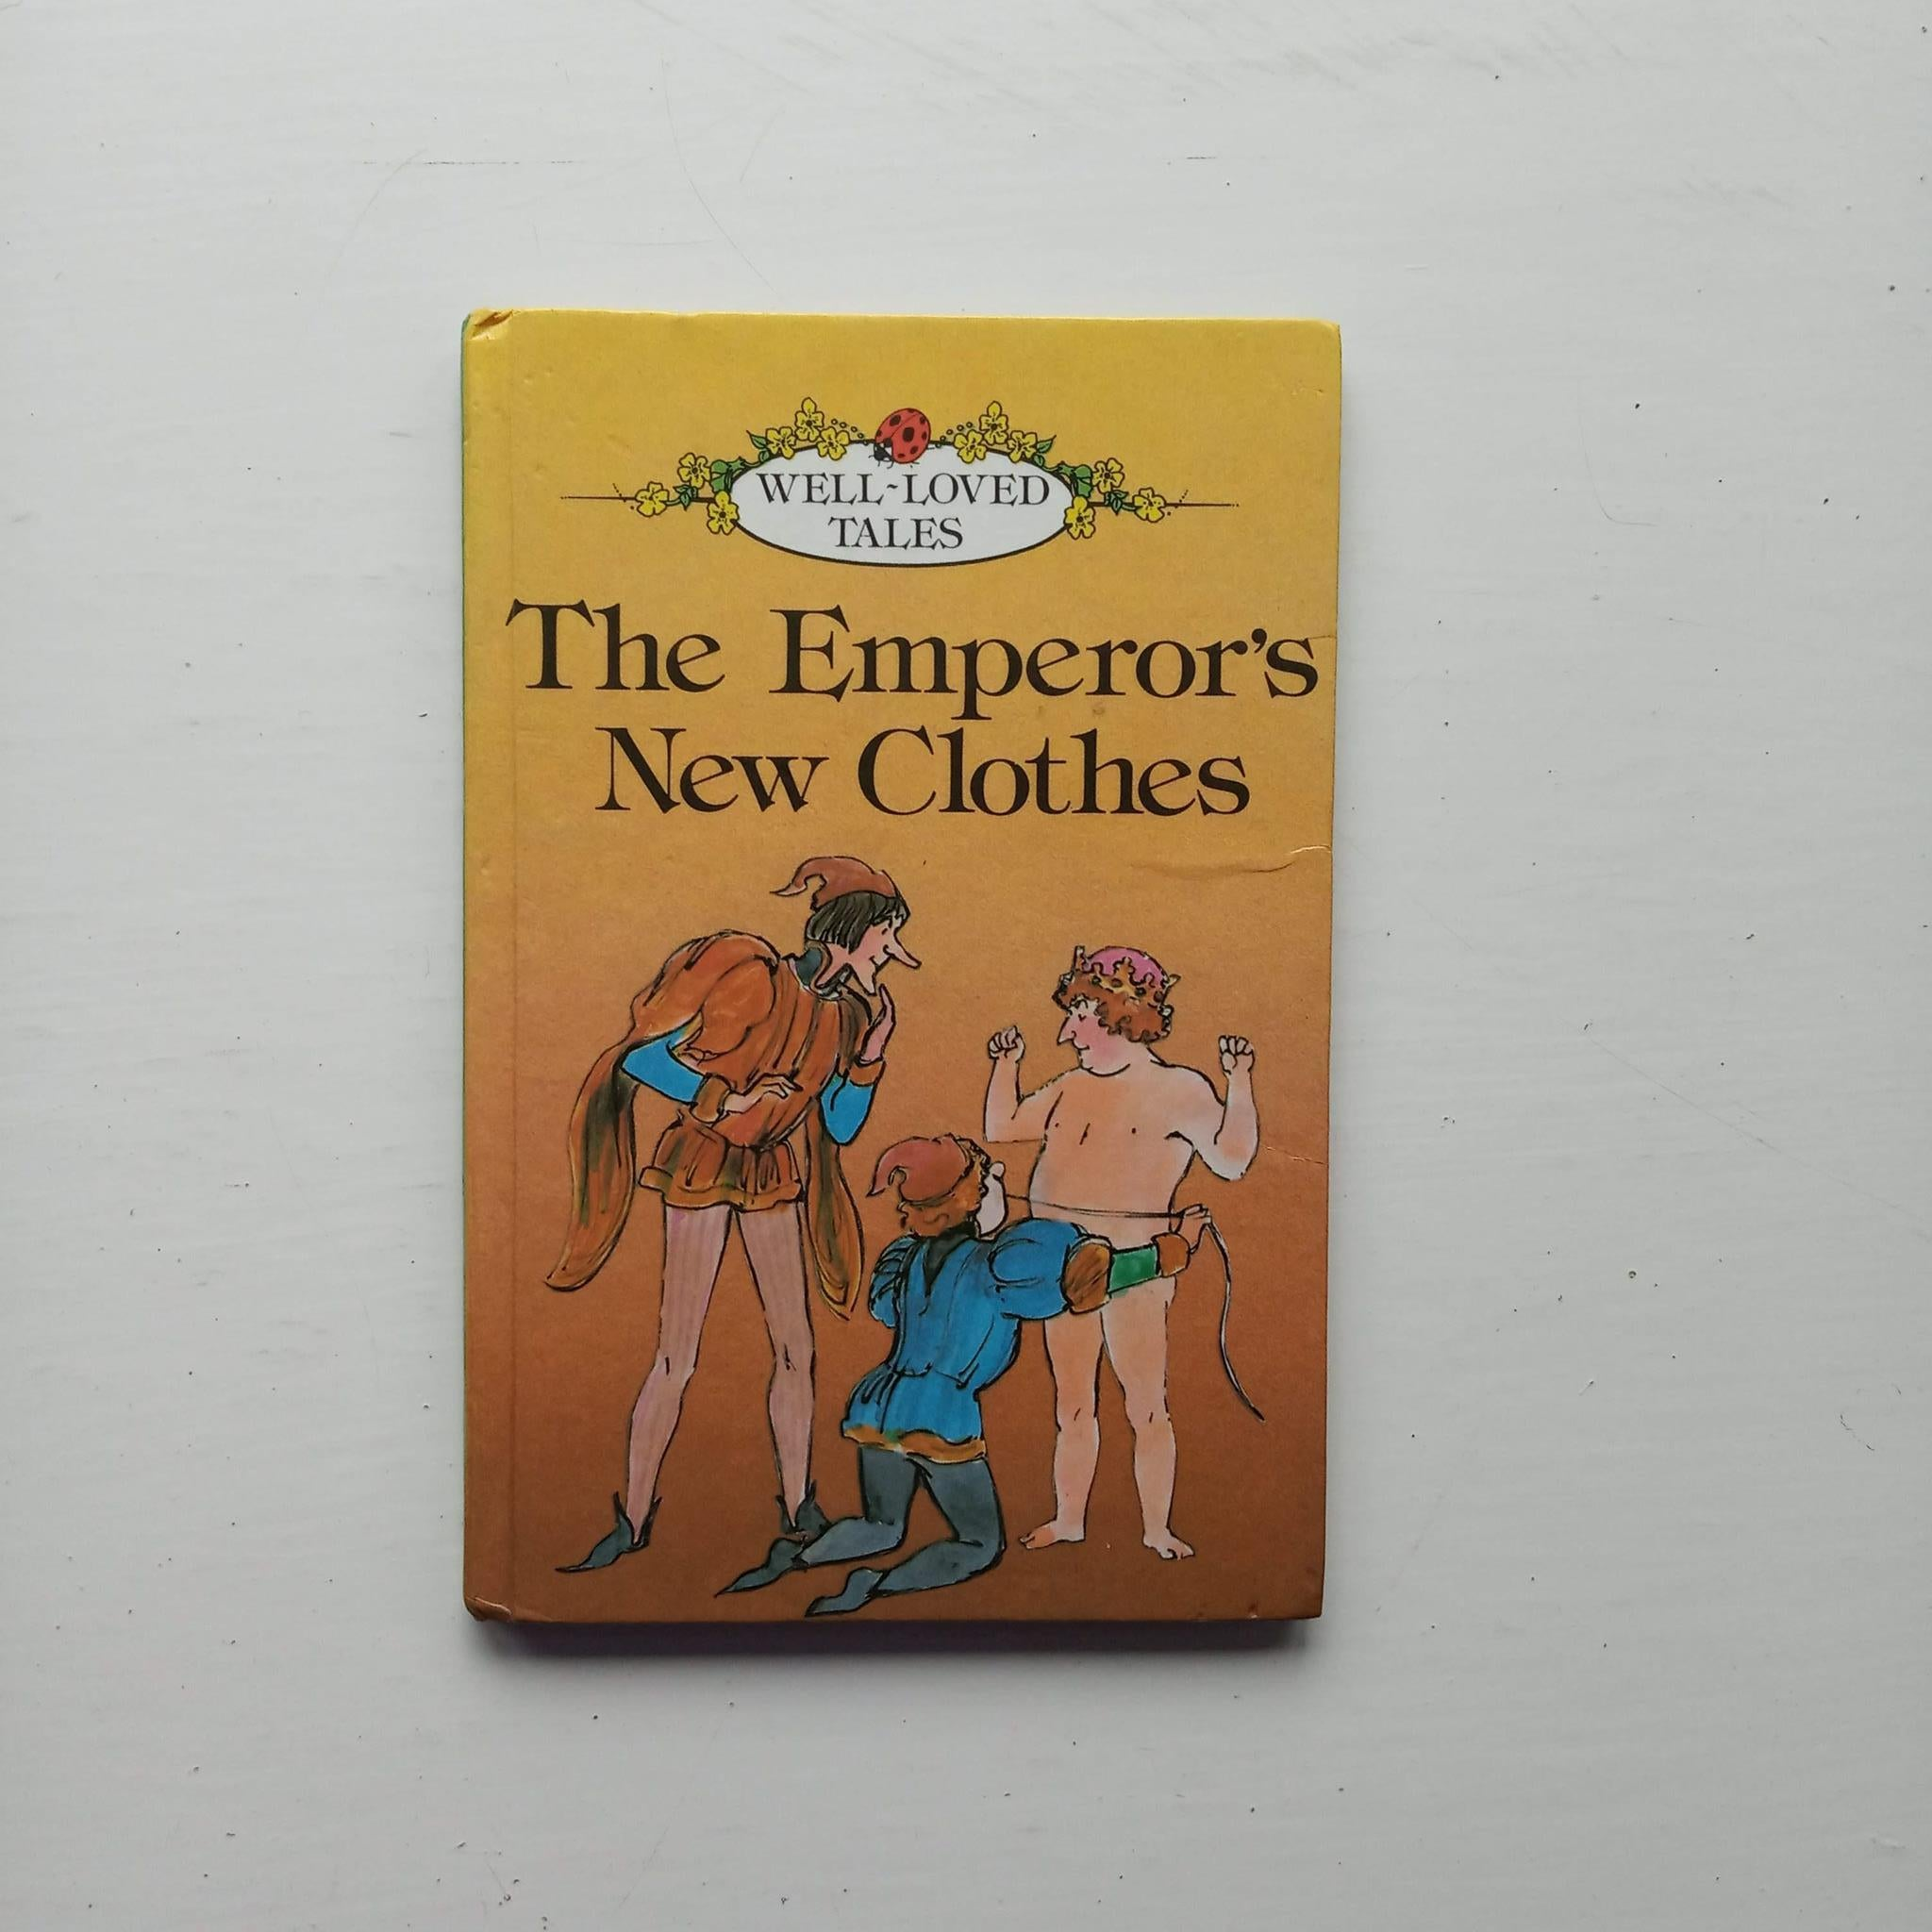 The Emperor's New Clothes by Lynne Bradbury